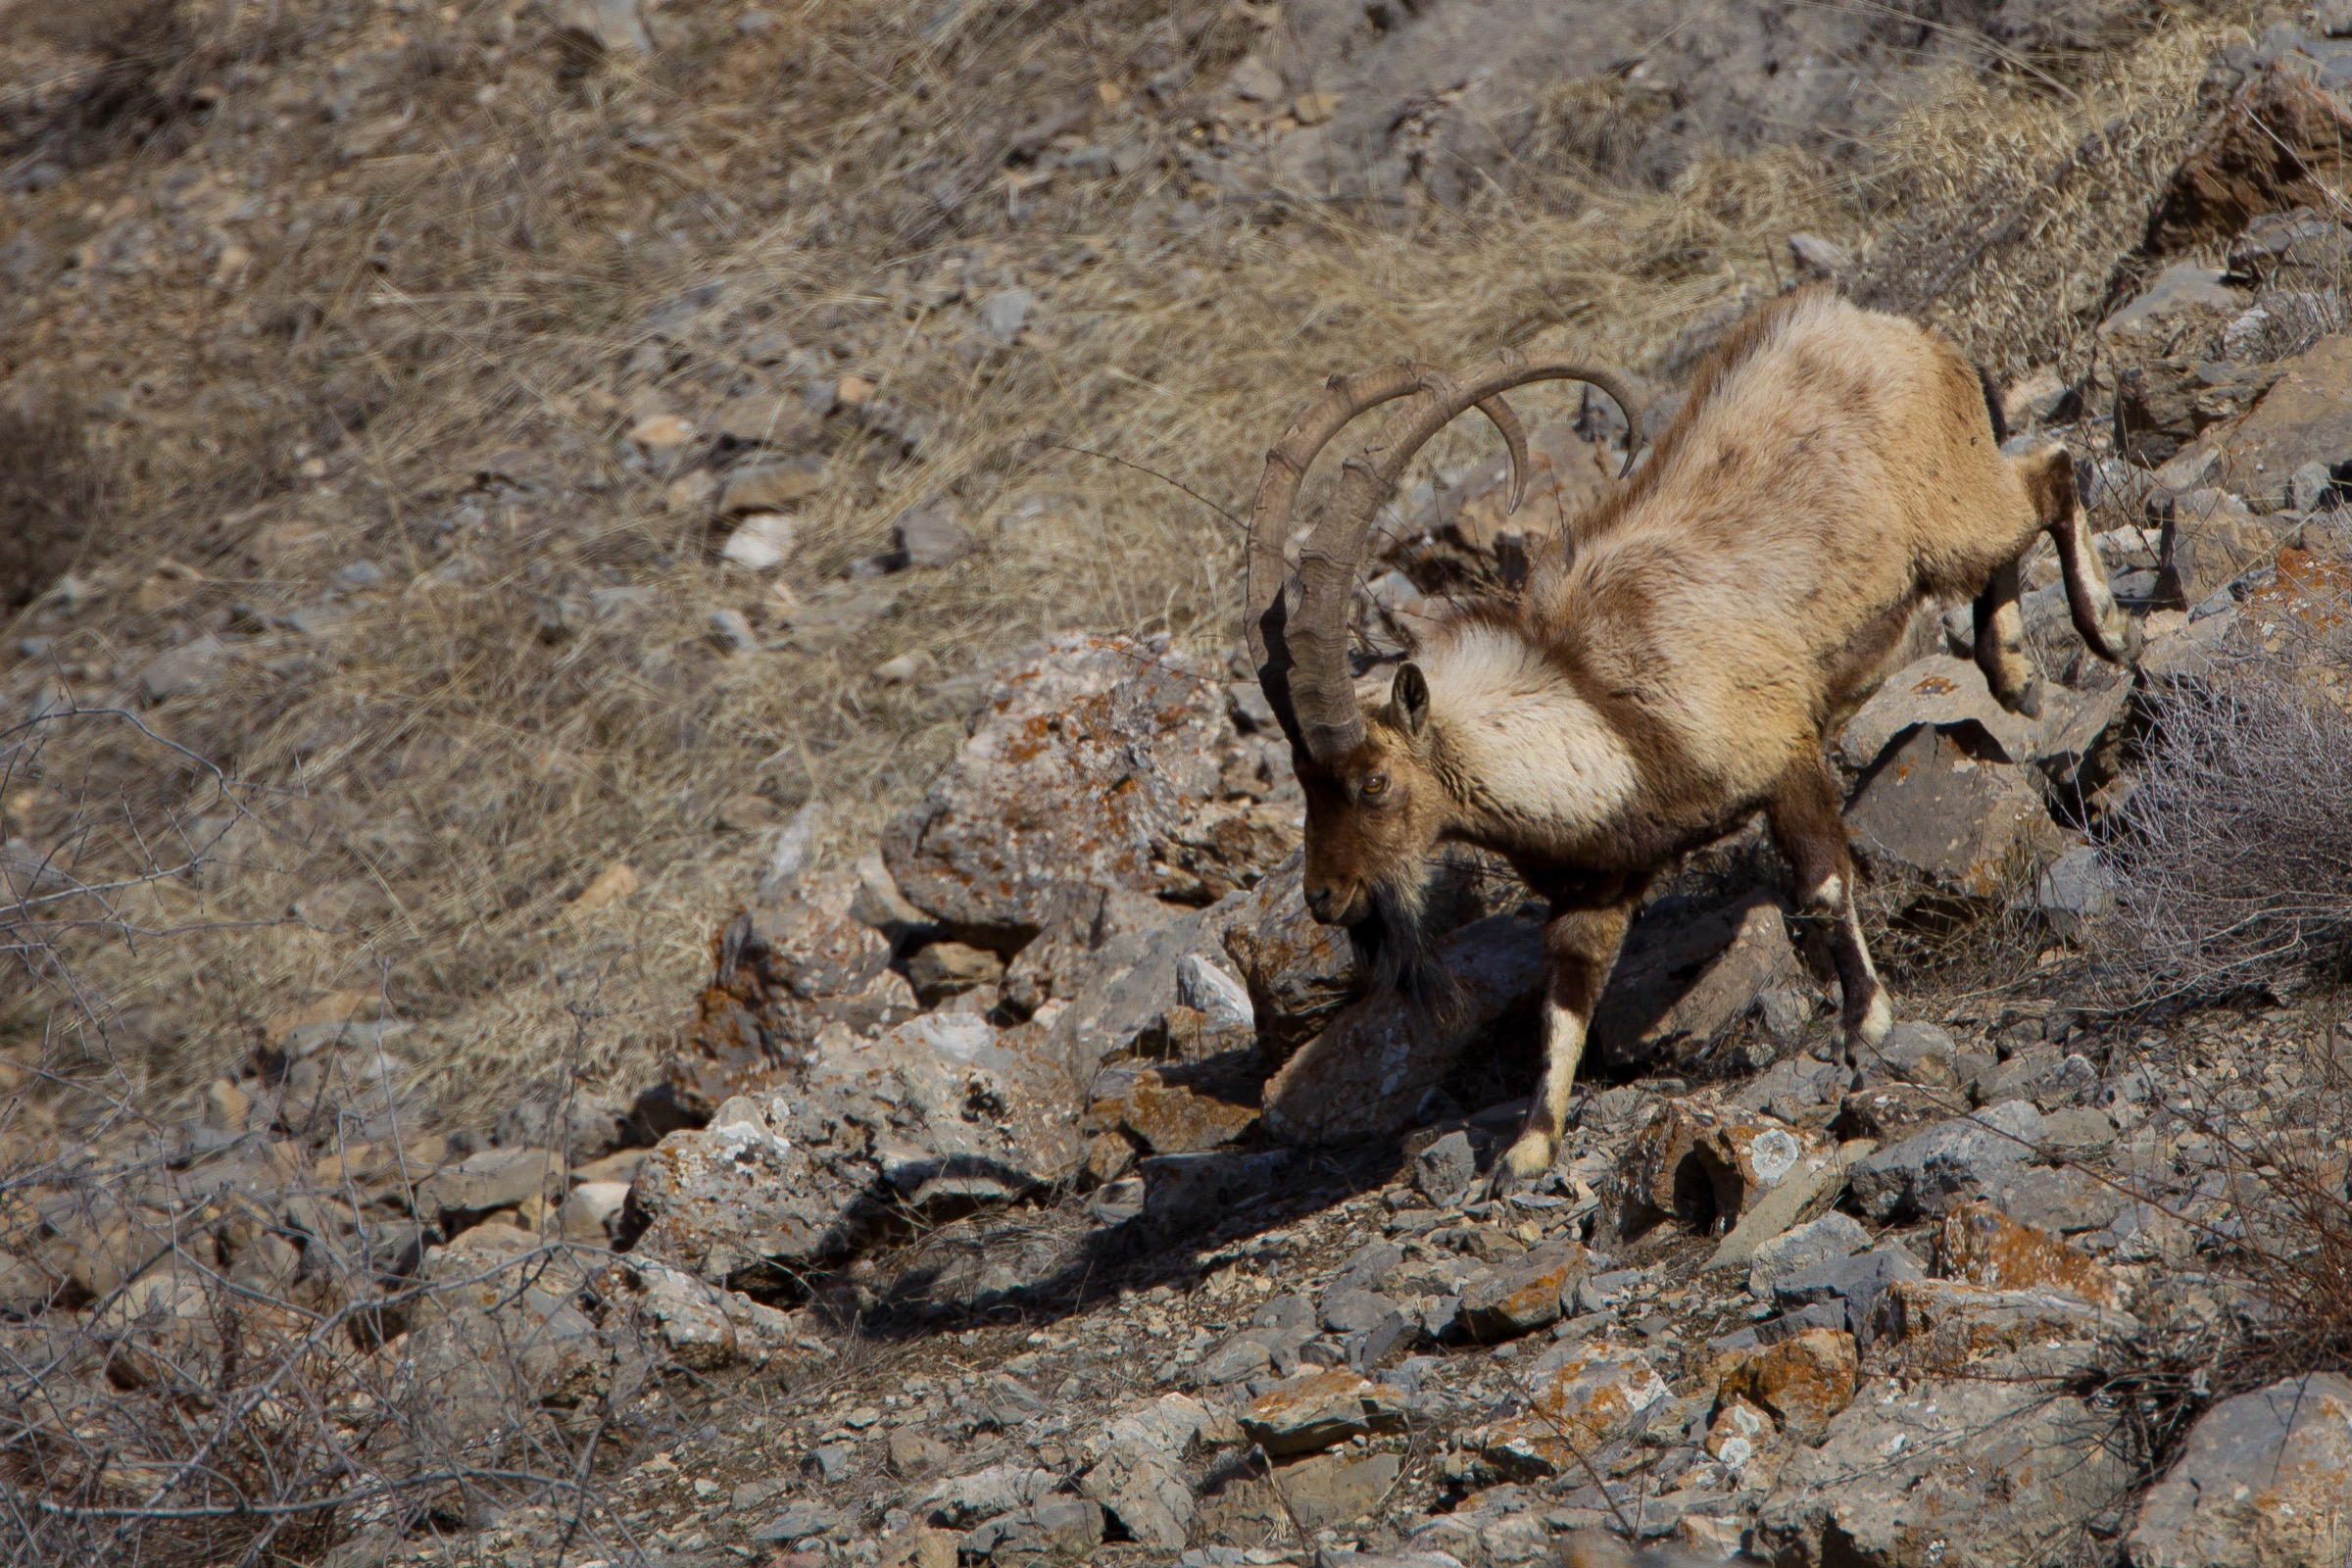 A male wild goat (<em>Capra aegagrus</em>) descends a steep, rocky slope in northeastern Iran's Tandooreh National Park. Photograph by Behzad Farahanchi